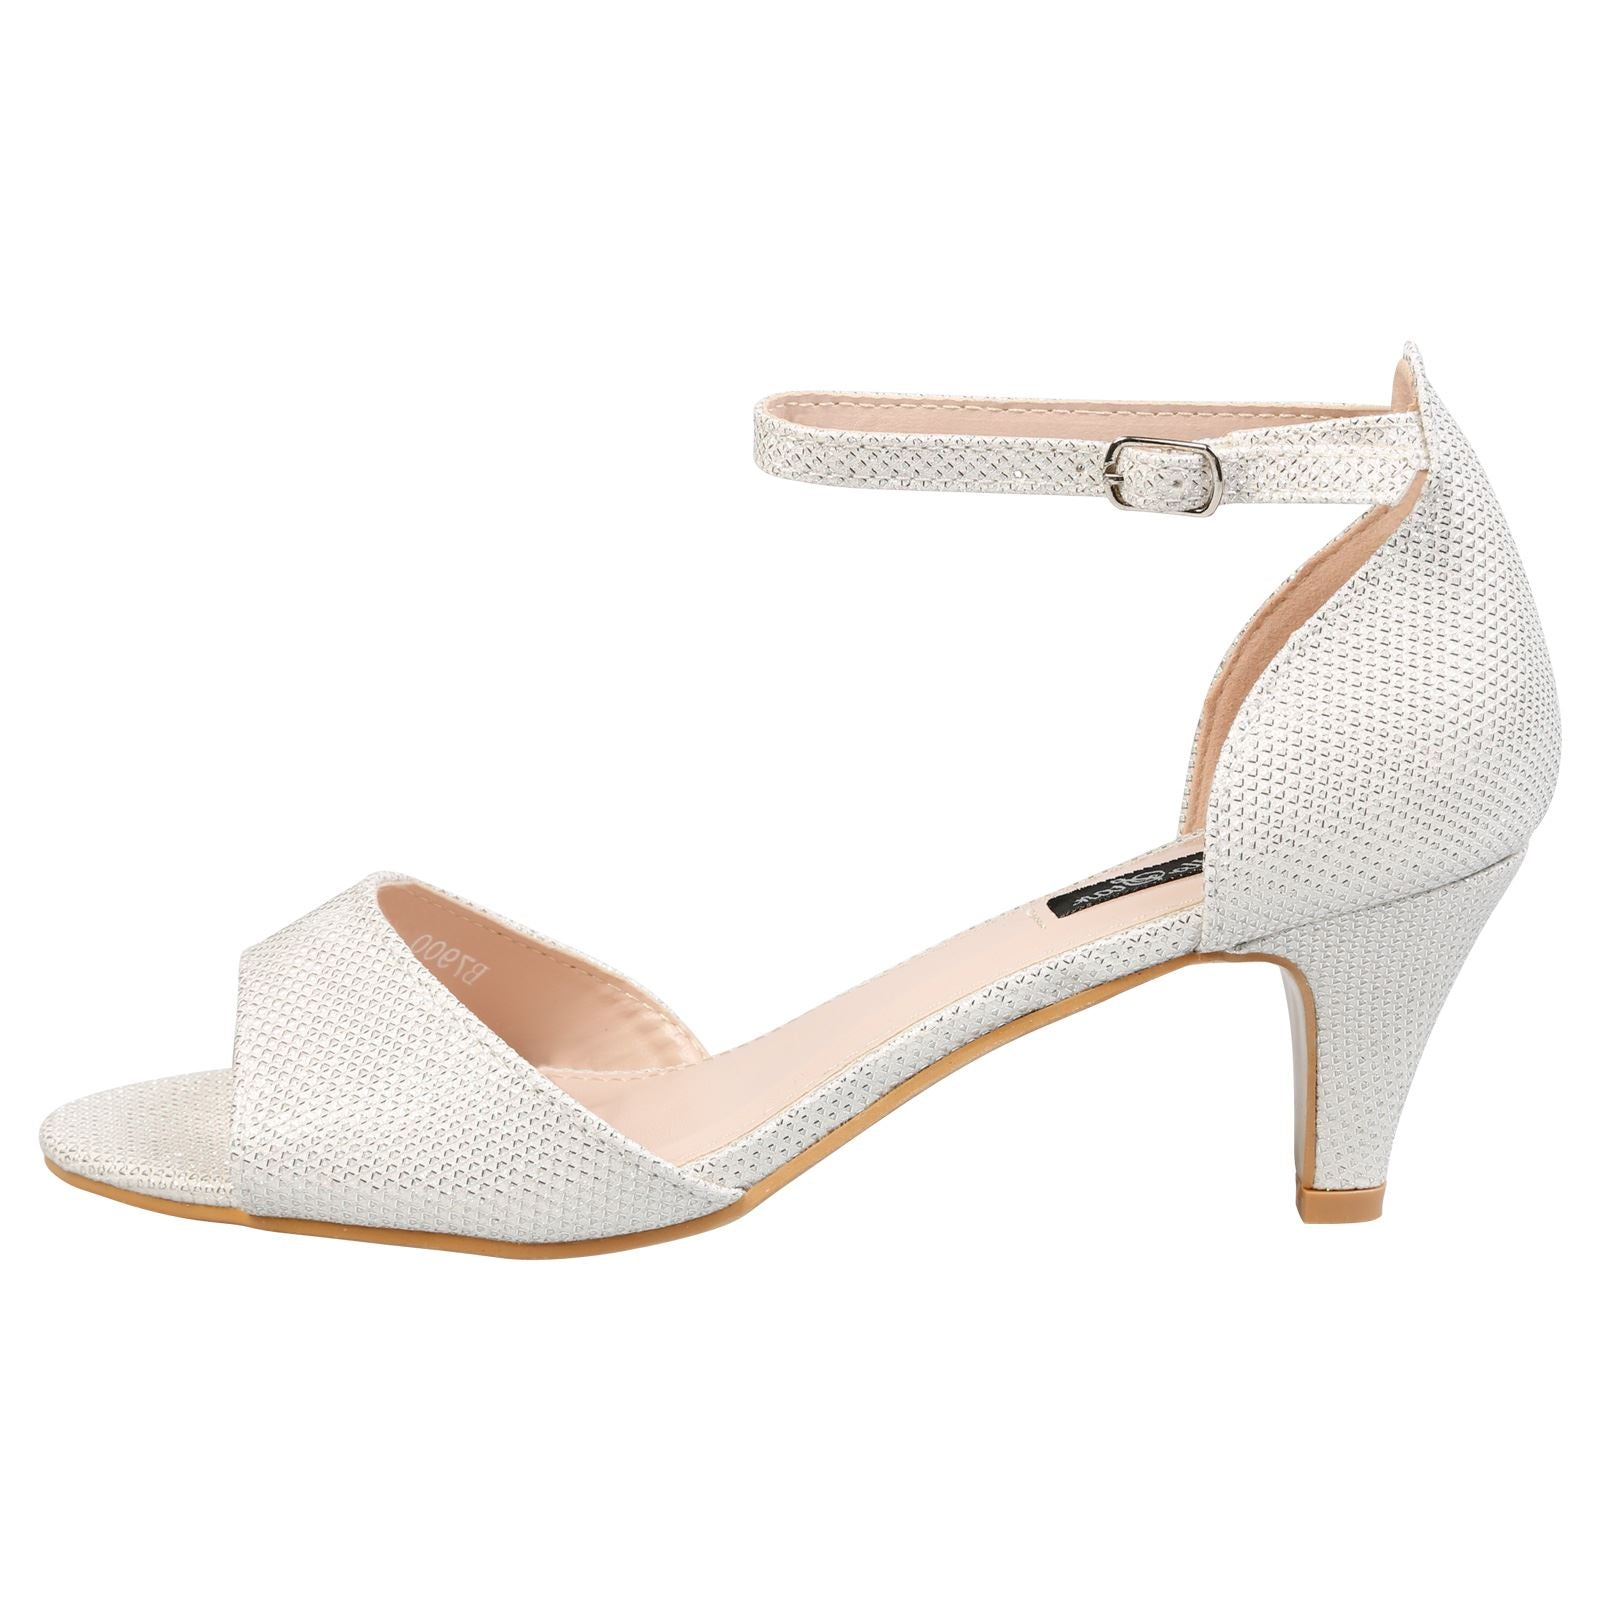 Laurie Low Heel Ankle Strap Sandals in White Shimmer